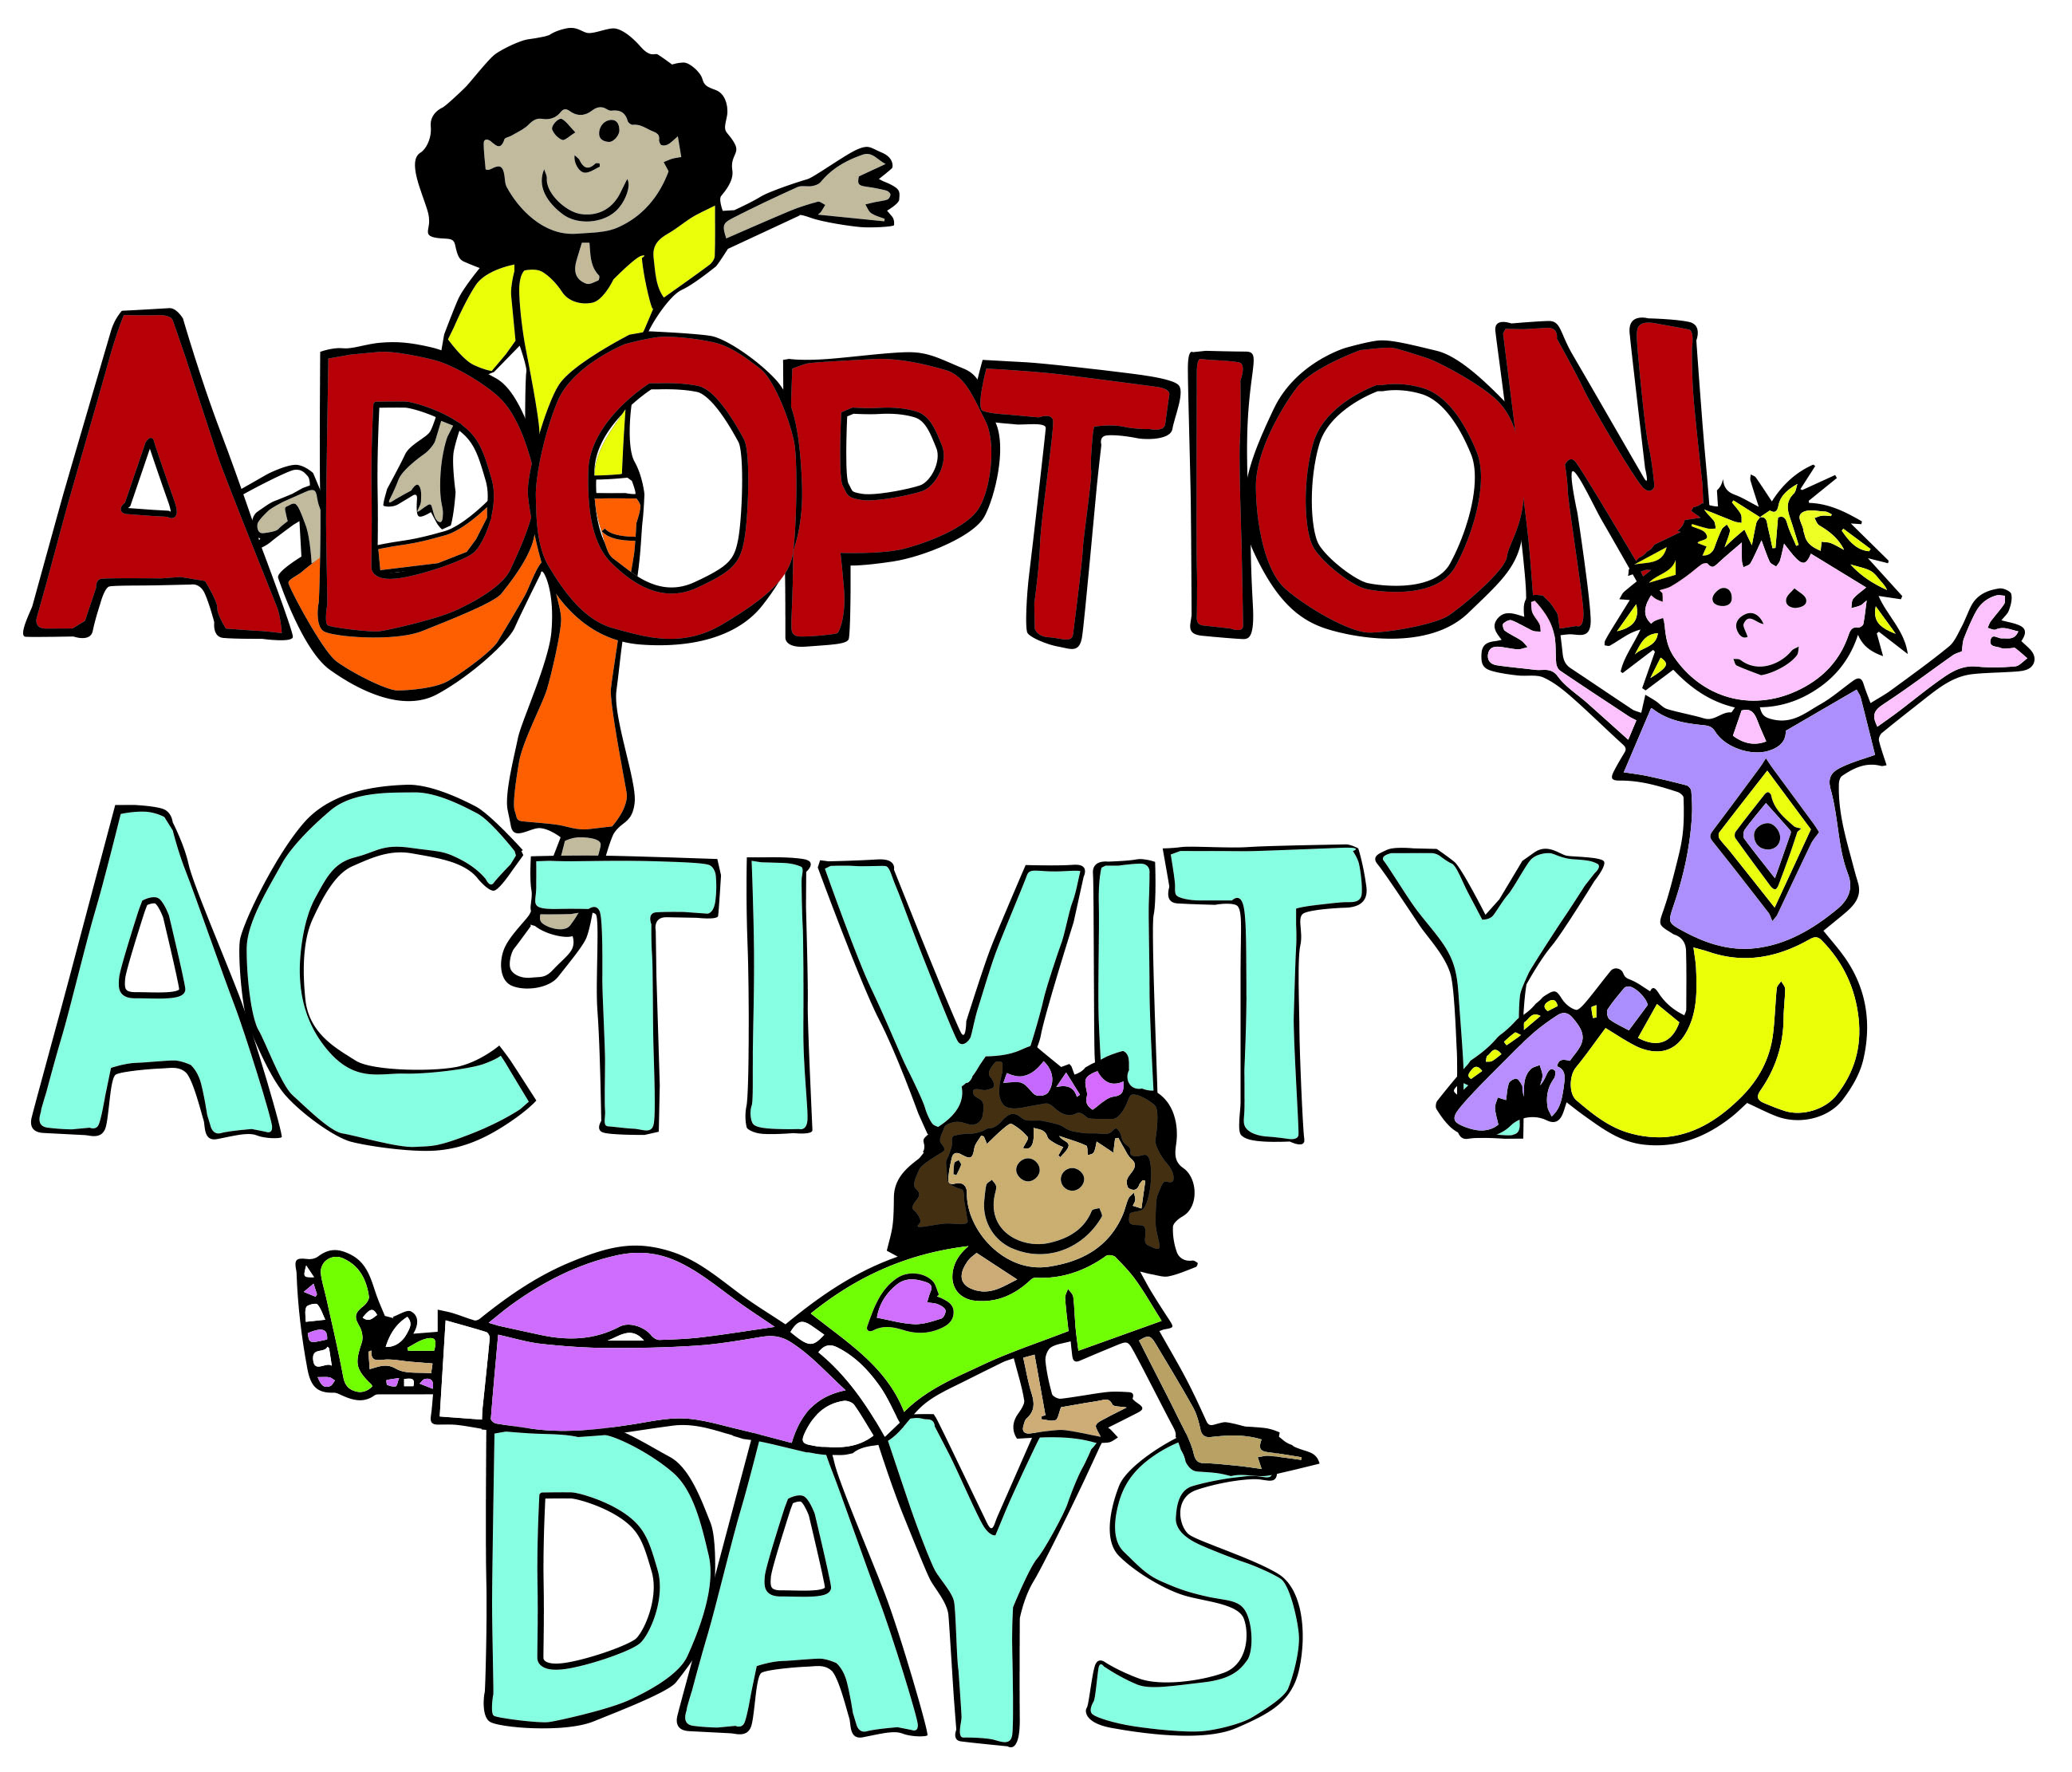 Adoption Activity Days.